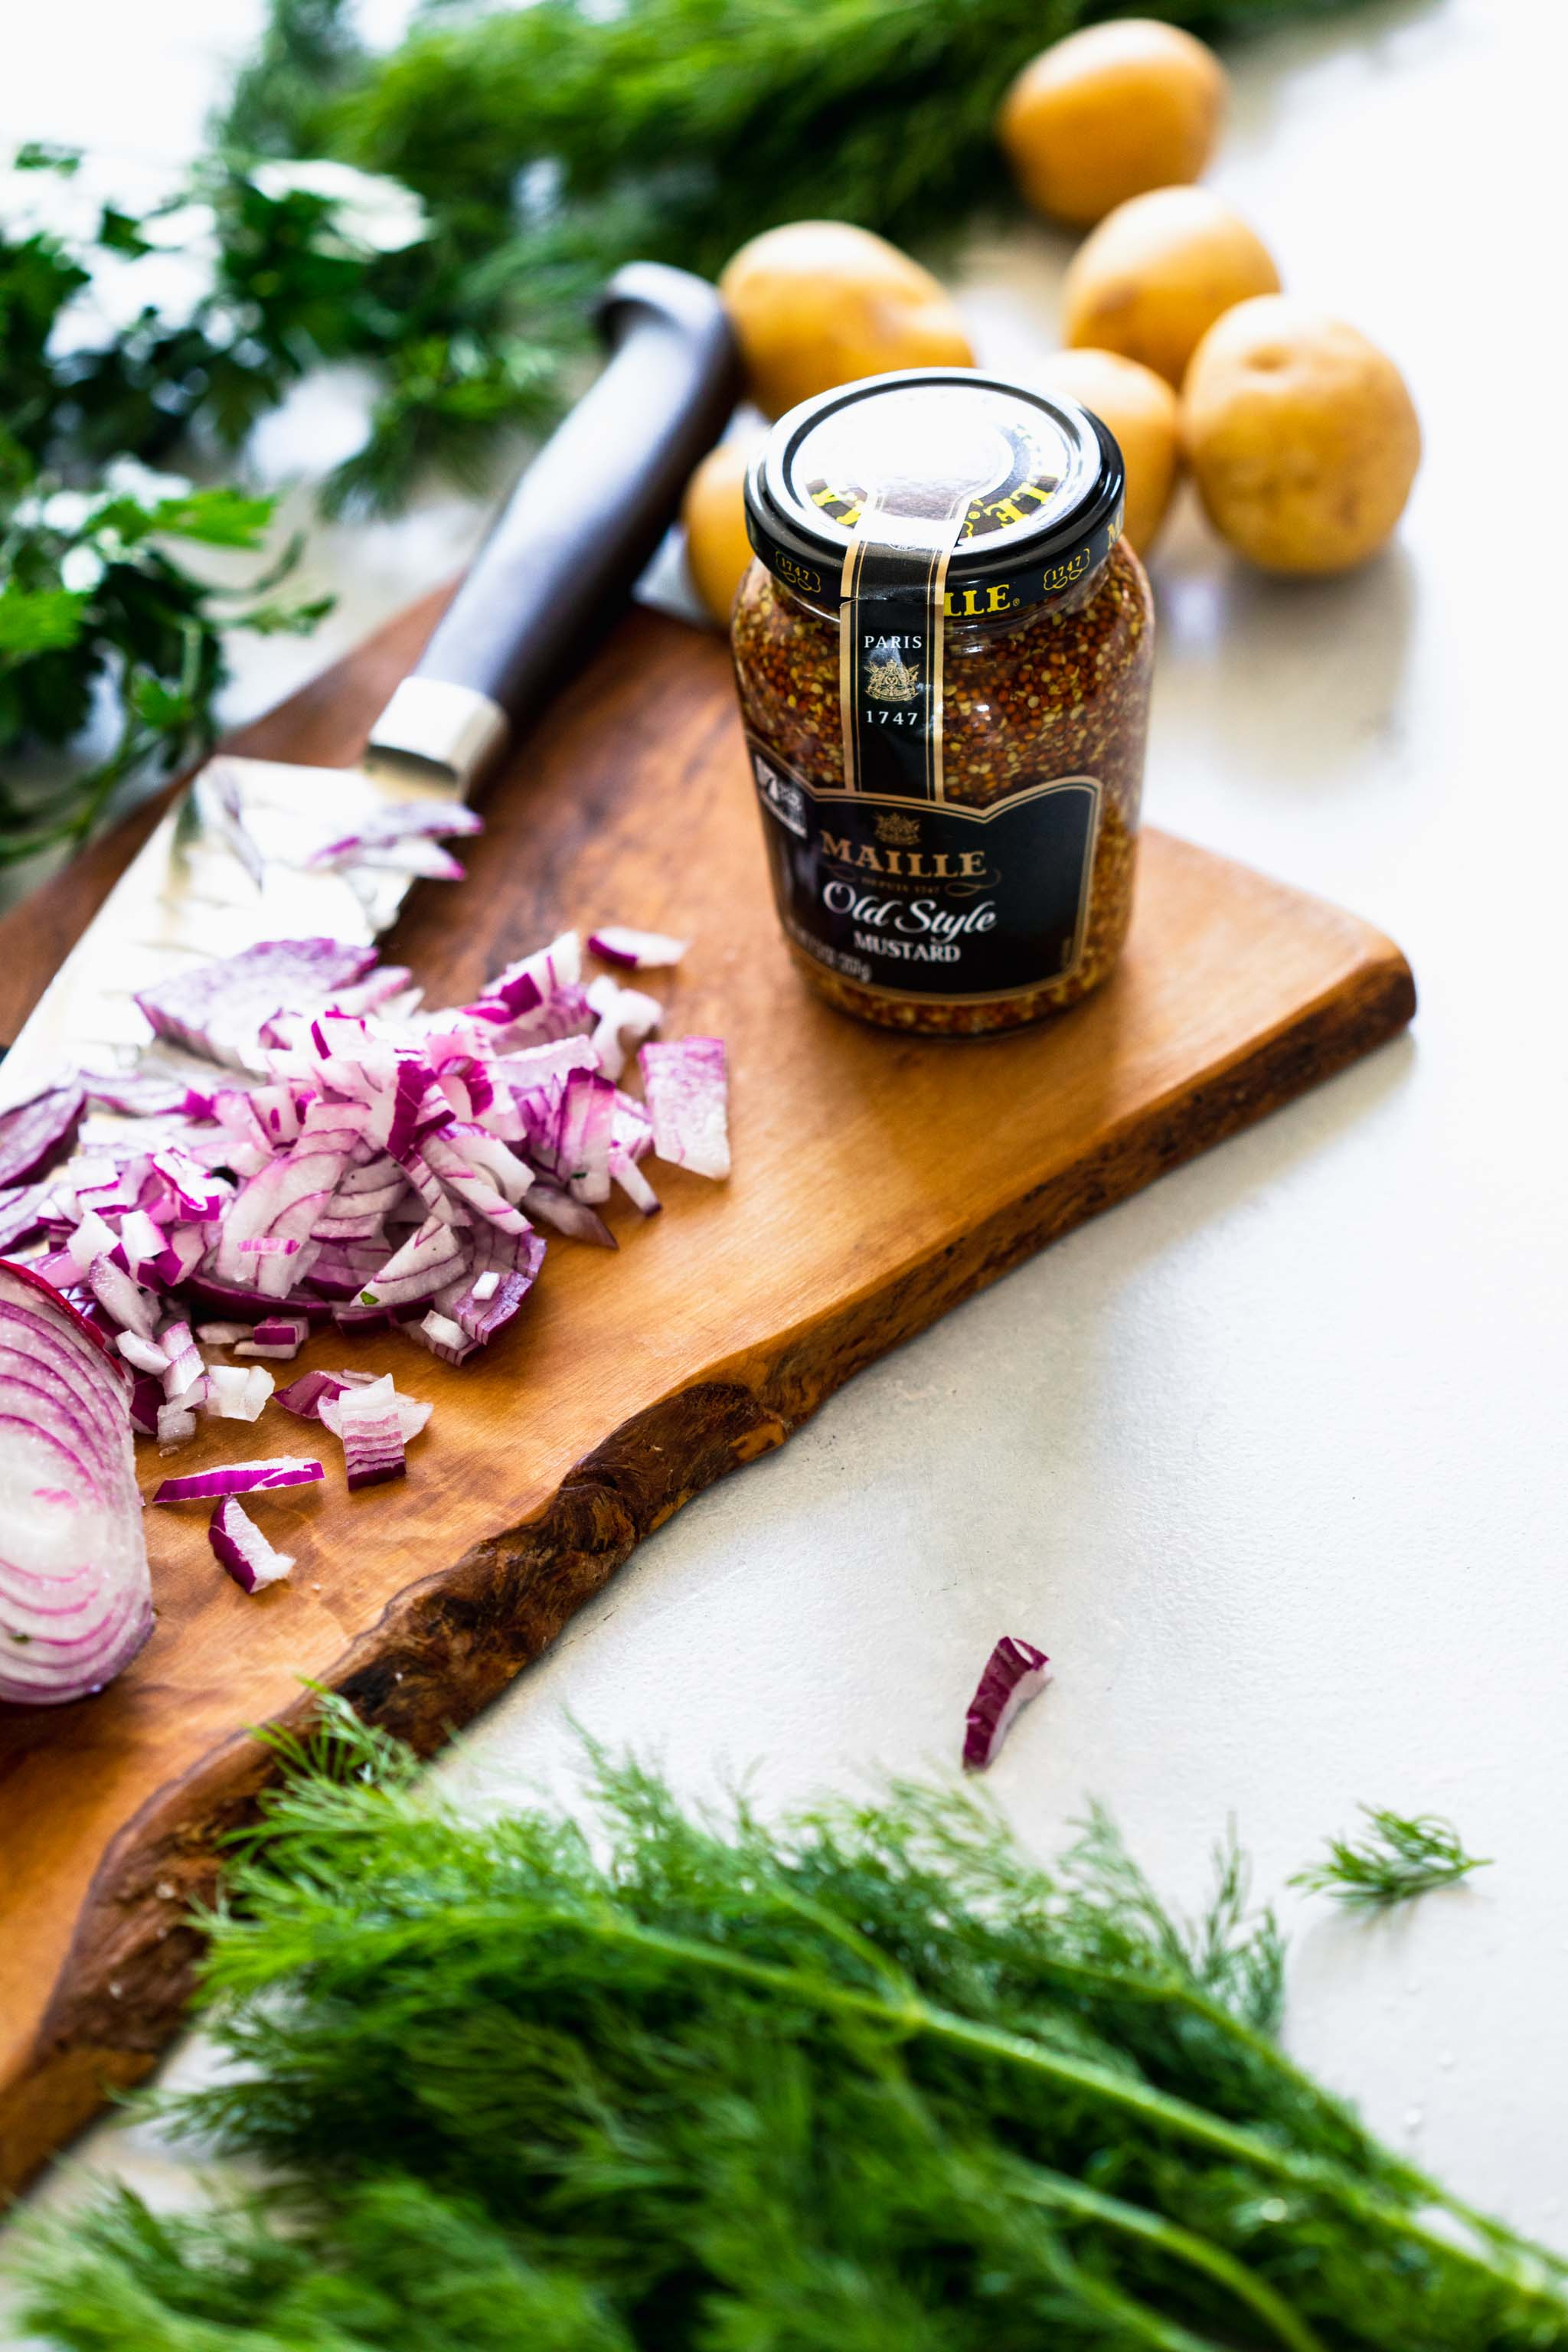 Jar of mustard next to chopped red onions on cutting board.